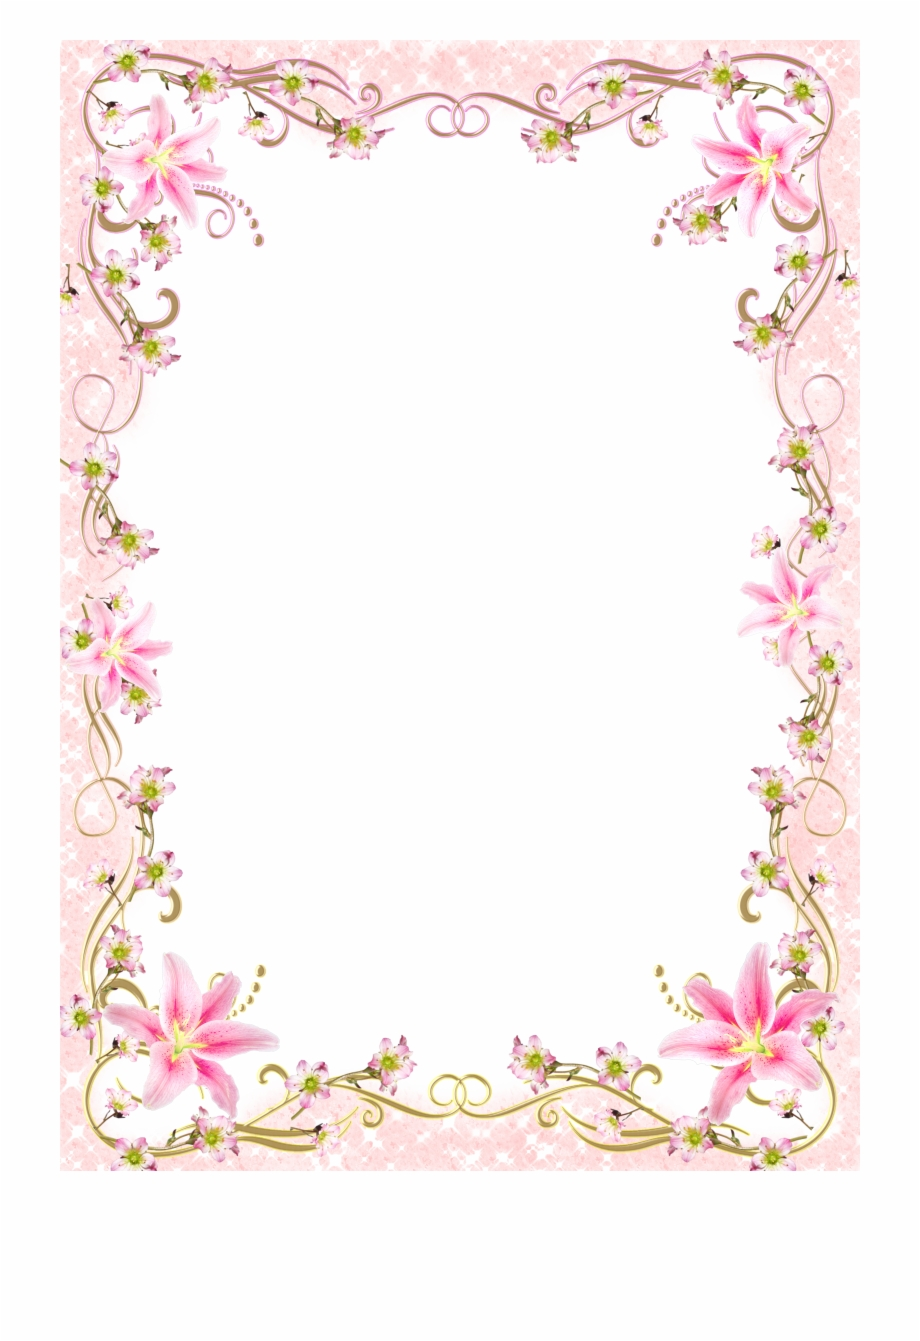 Romantic clipart borders graphic royalty free download Pink Picture Romantic Frame Template Floral Line Clipart ... graphic royalty free download